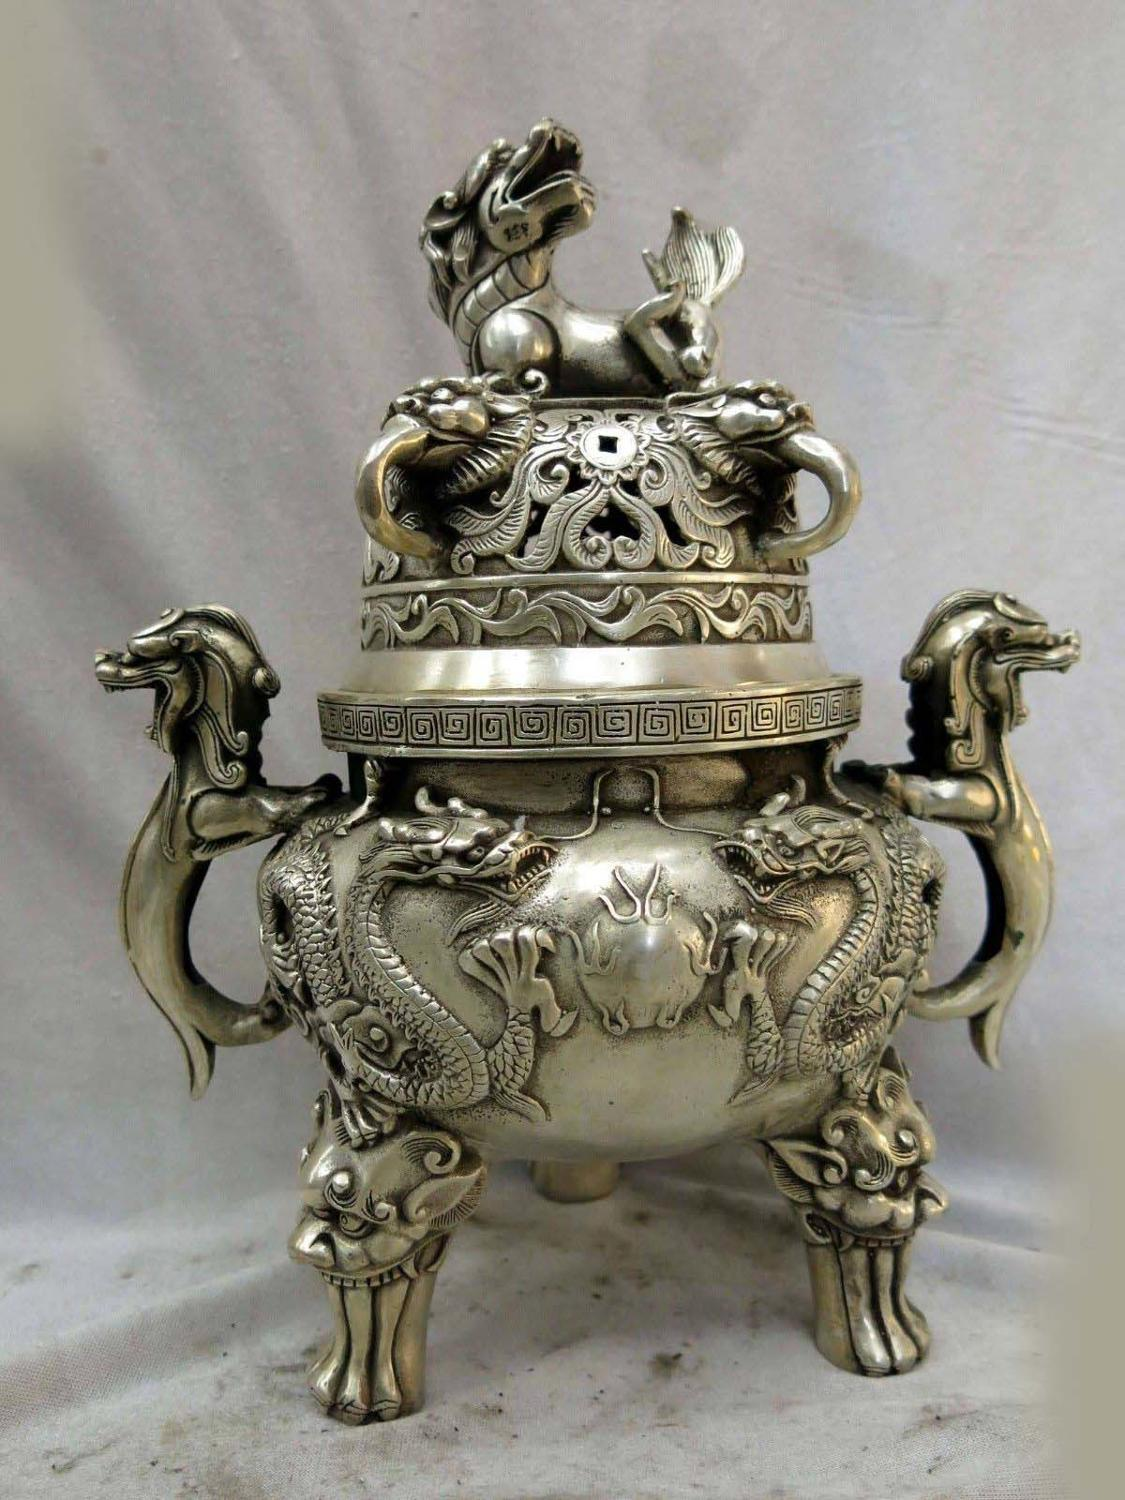 11 China silver two dragons play bead Foo Dogs Lion censer Incense burner (D0426)11 China silver two dragons play bead Foo Dogs Lion censer Incense burner (D0426)